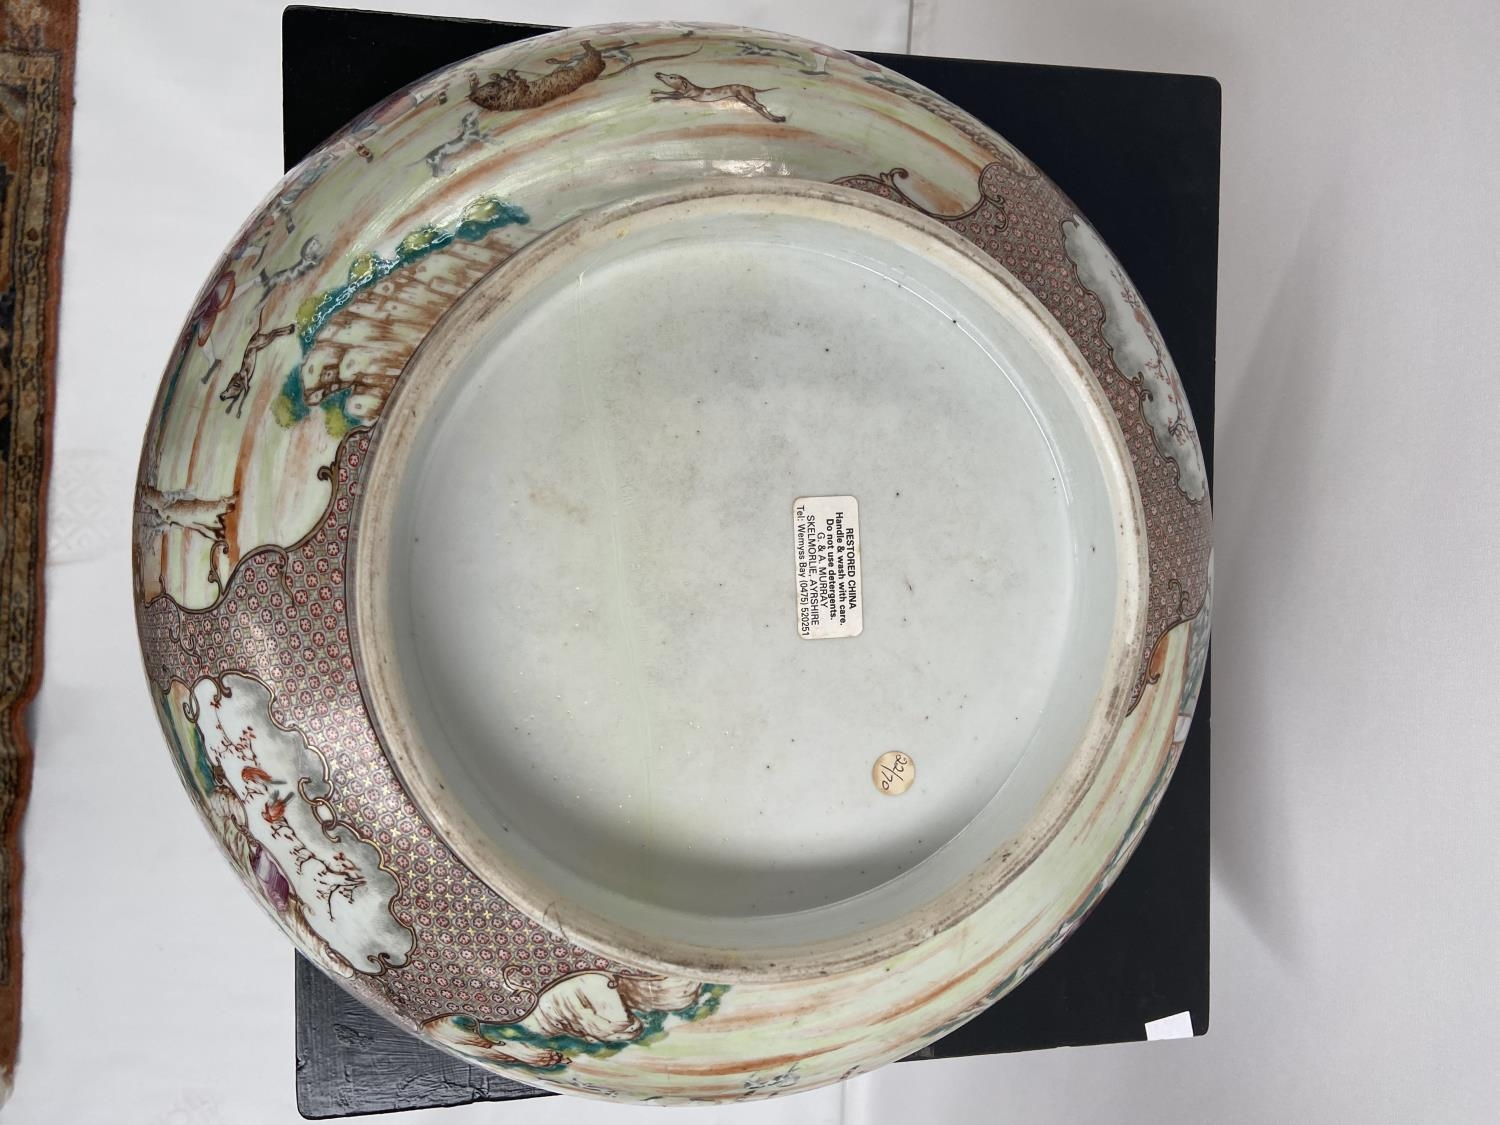 A LARGE 19TH CENTURY CHINESE HAND PAINTED BOWL. EXTERIOR DEPICTS CHINESE HUNTING SCENE PANELS. THE - Image 32 of 39